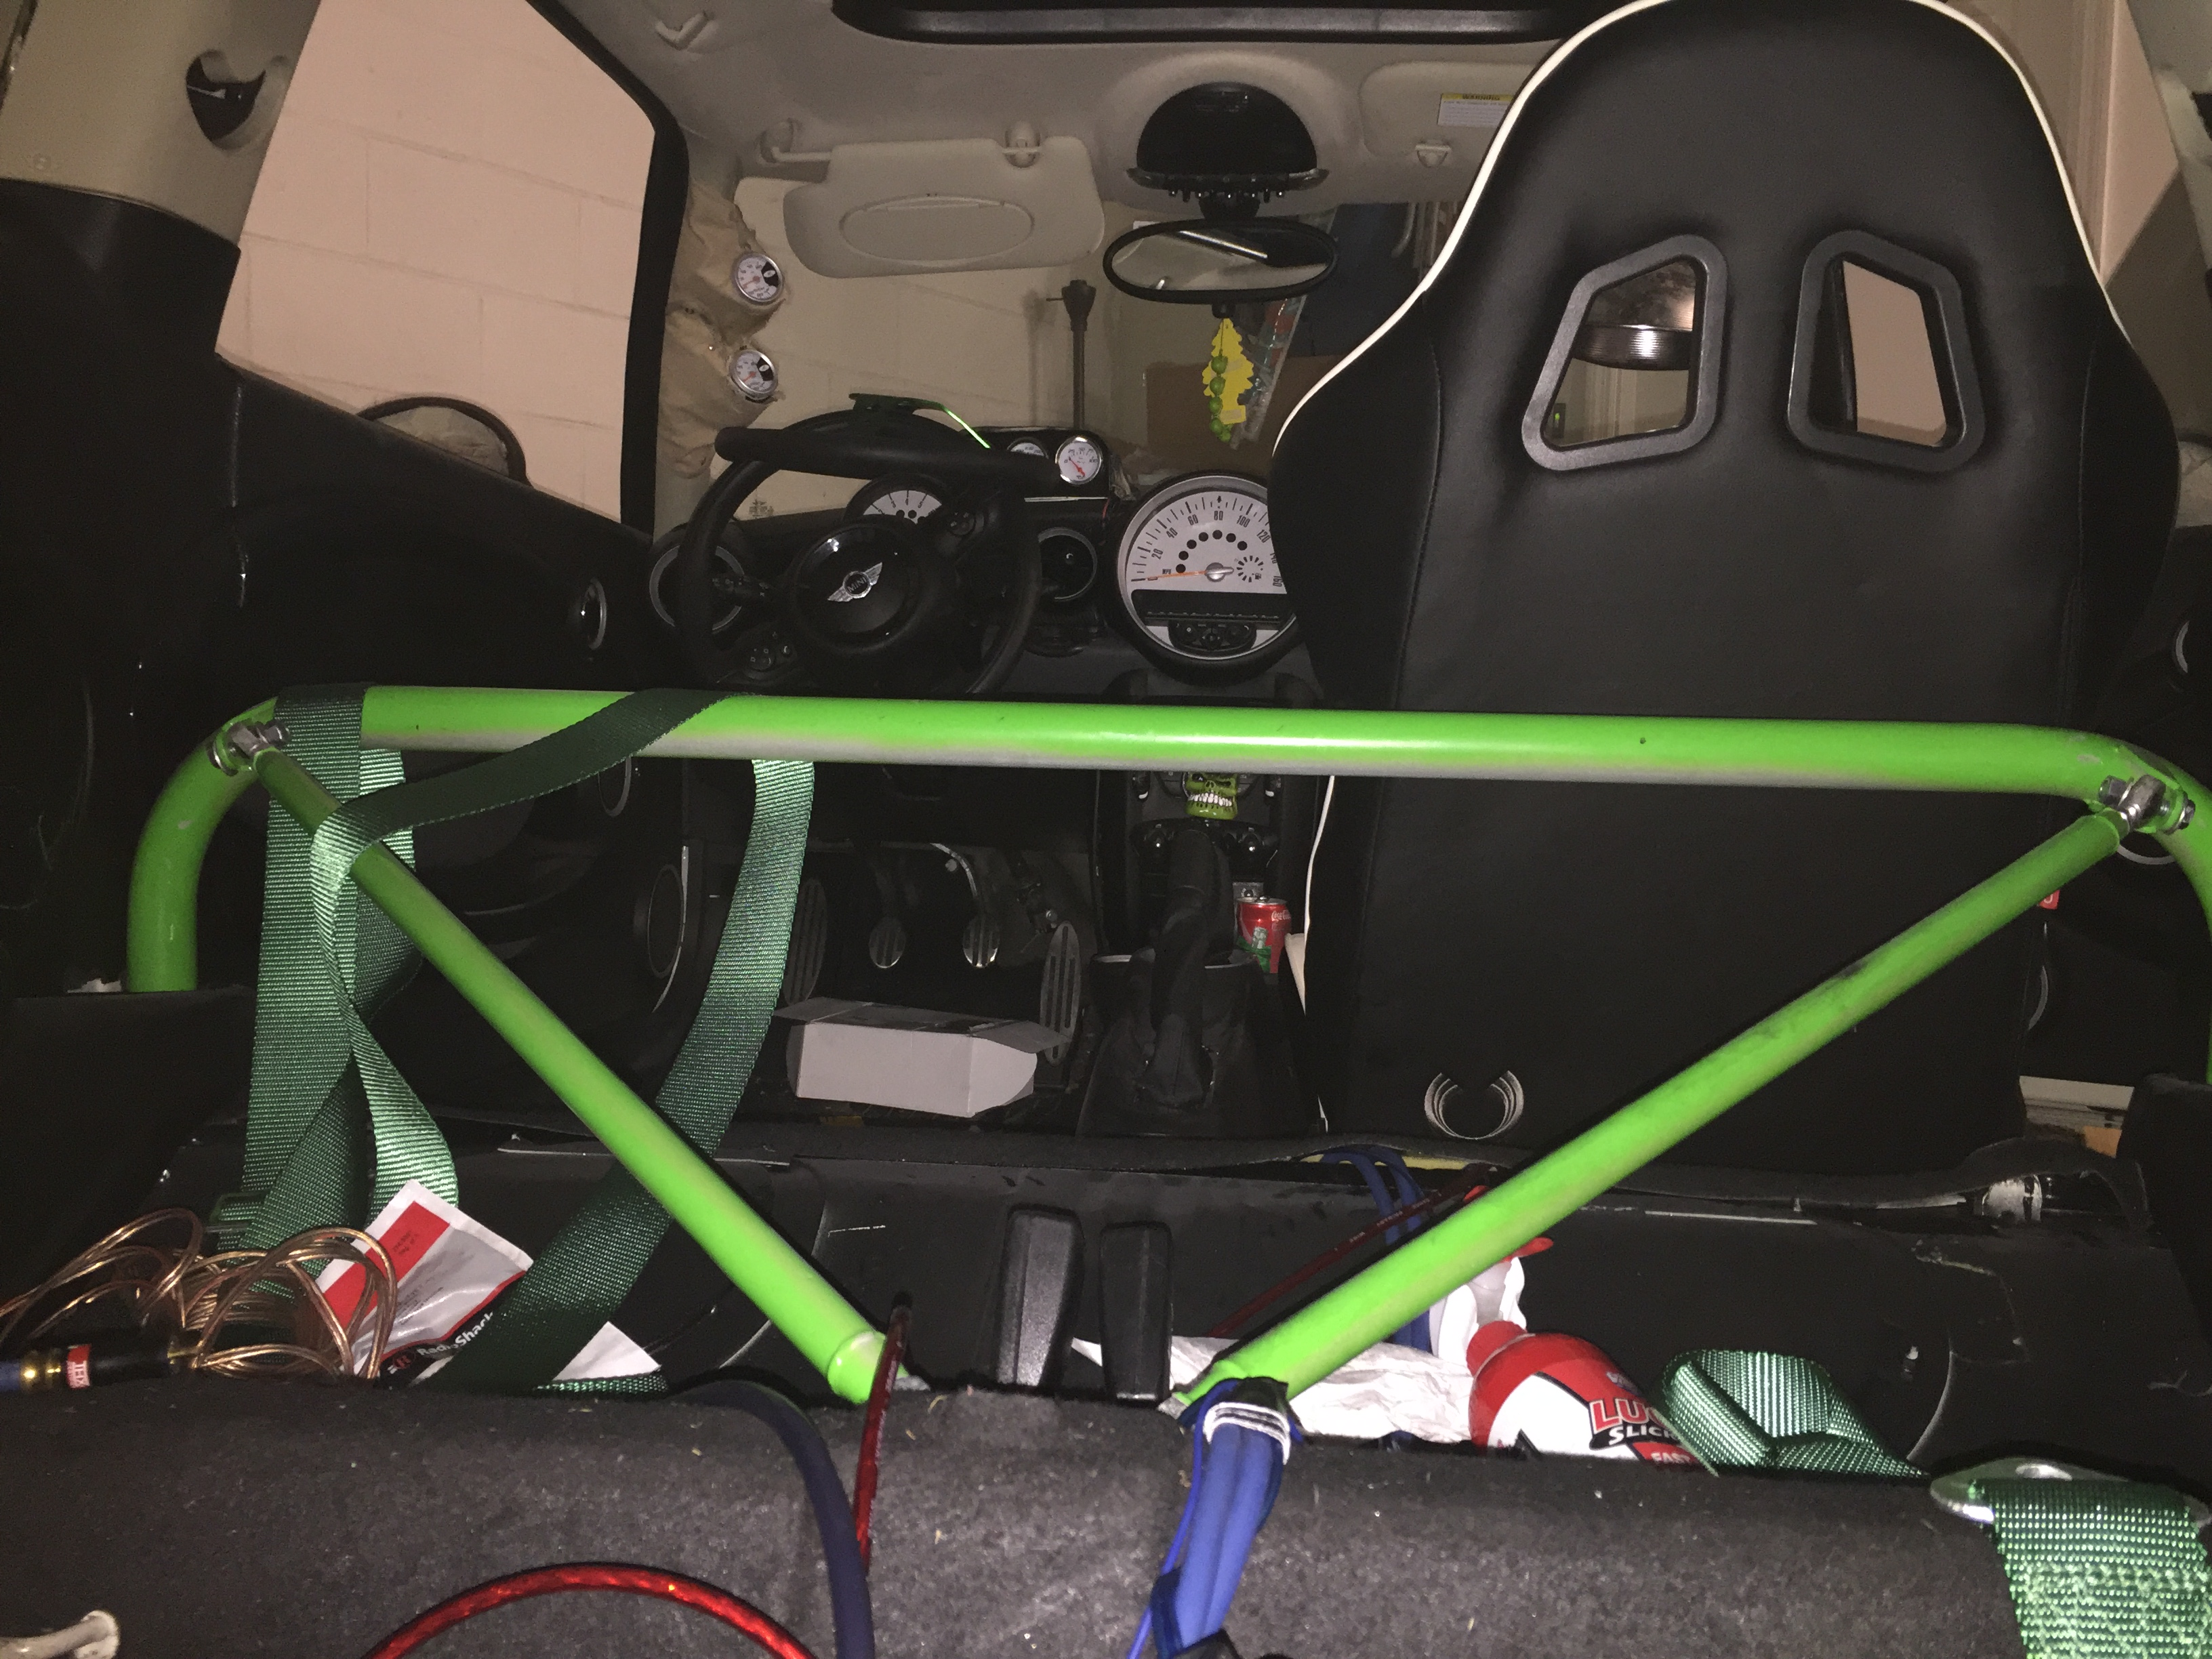 Full paint and body work interior and motor